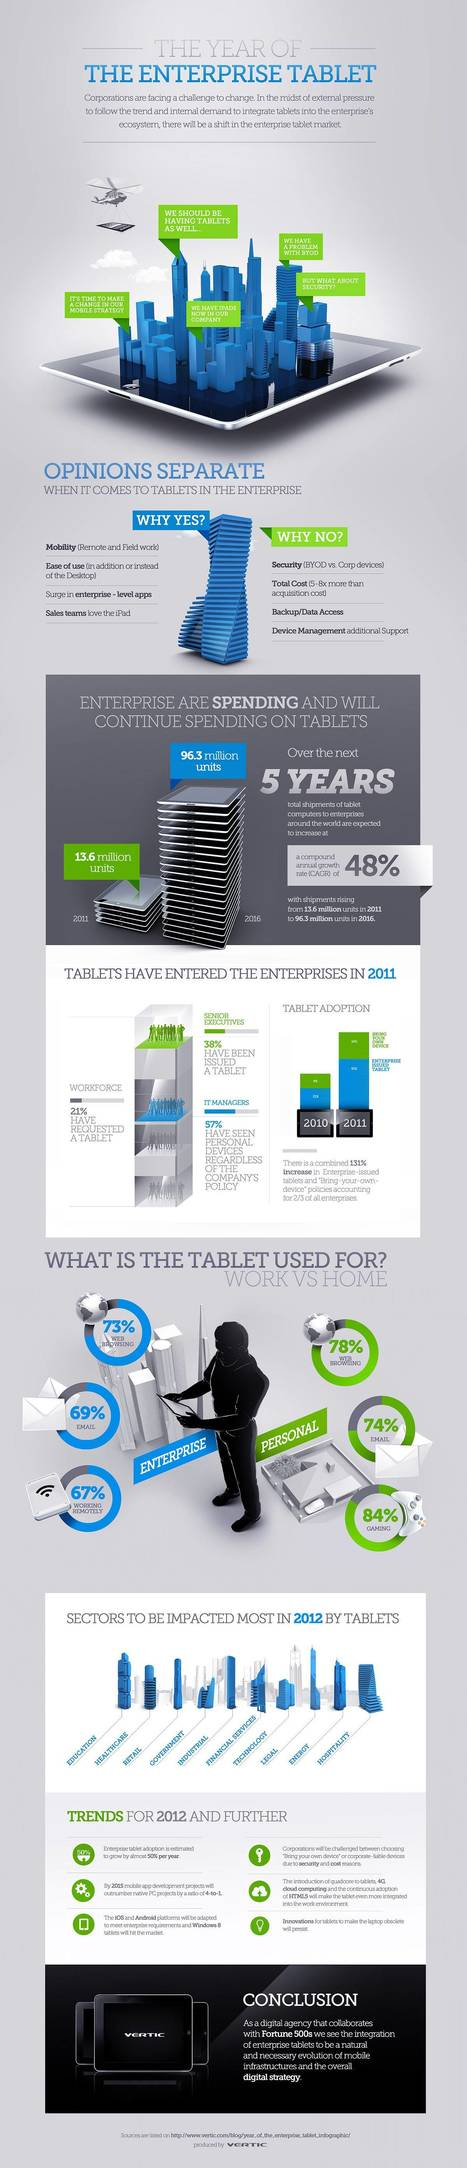 Is 2012 the Year of the Enterprise Tablet | Cloud Central | Scoop.it